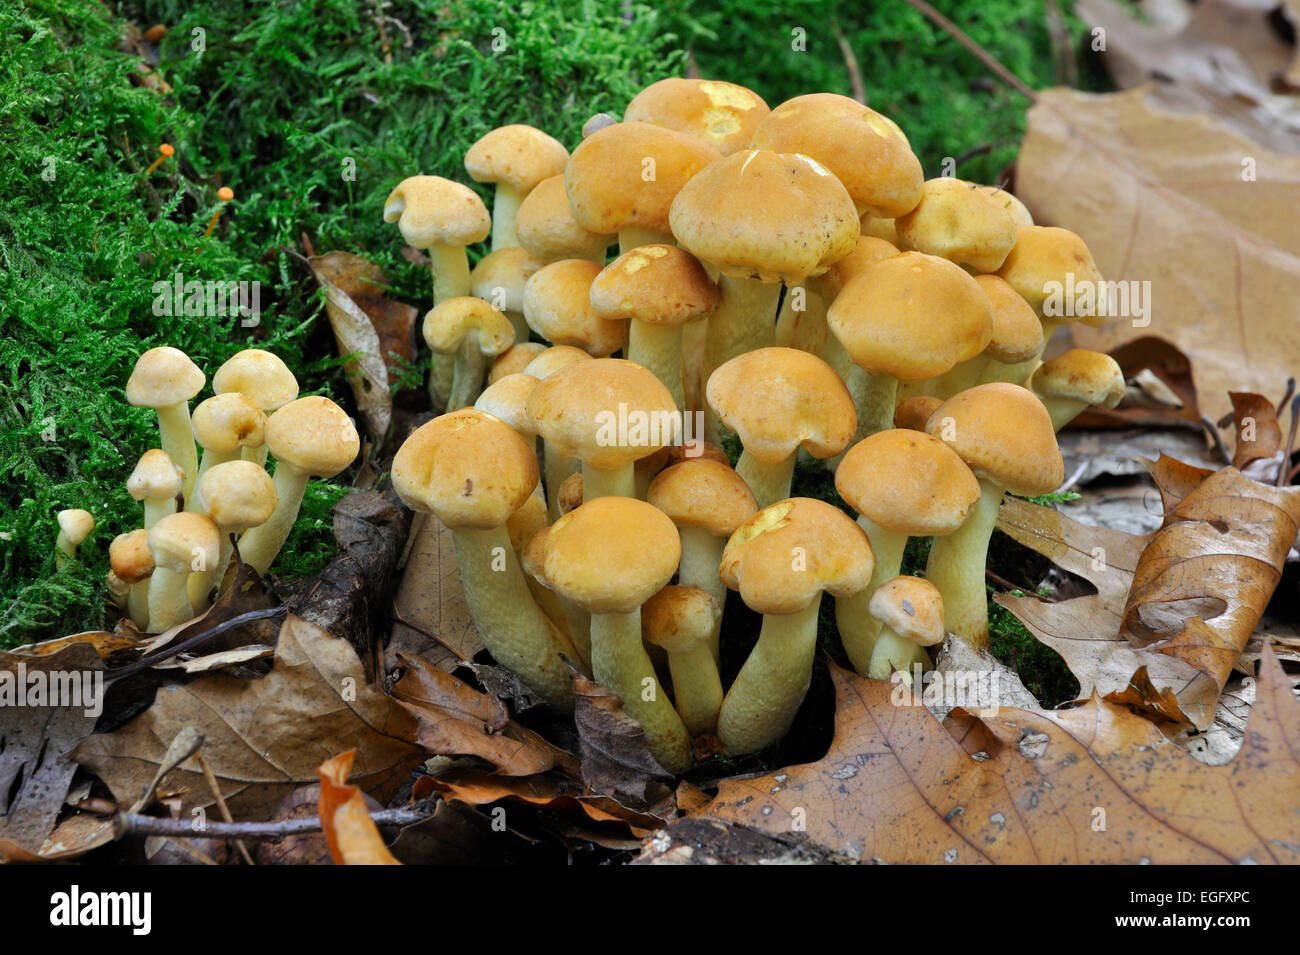 Sulphur tuft fungus / sulfur tuft / clustered woodlover (Hypholoma fasciculare) on decaying wood - Stock Image